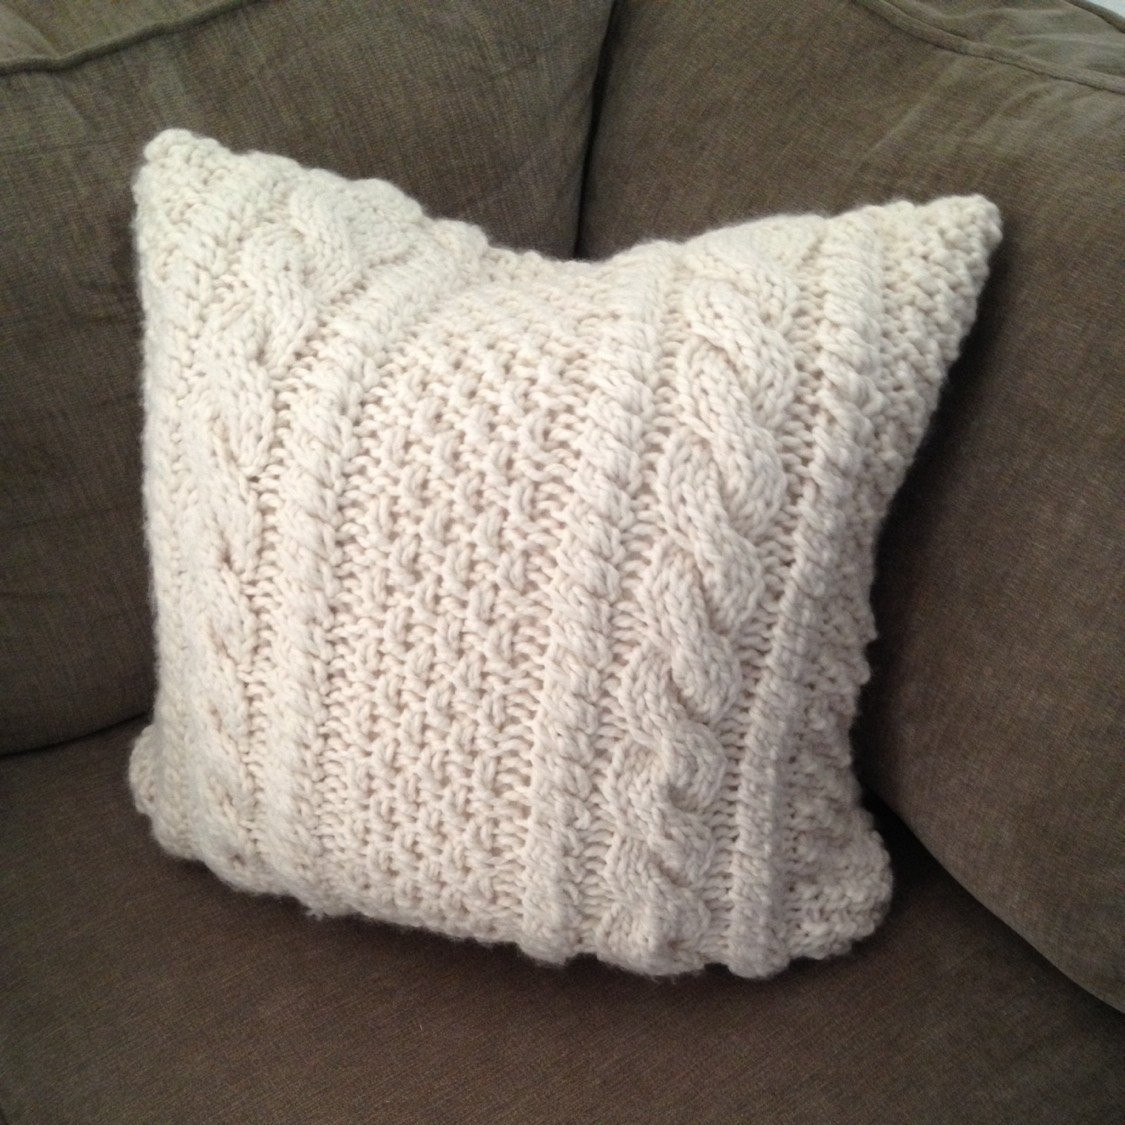 Knit Pillow Luxury Chunky Cable Knit Pillow Cover Of Charming 46 Pics Knit Pillow